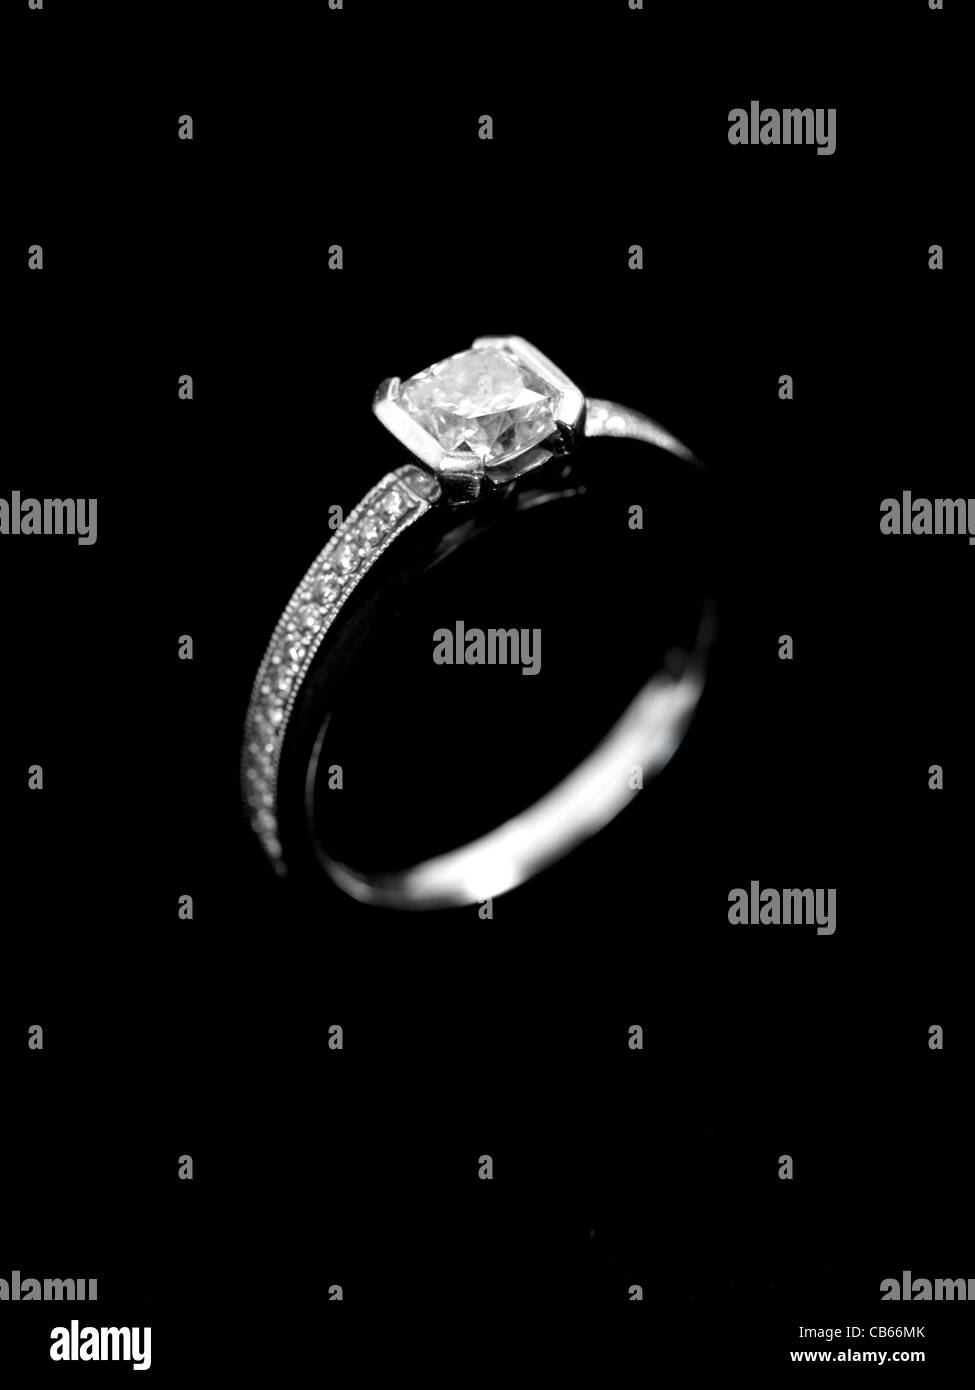 A close up shot of an engagement ring - Stock Image